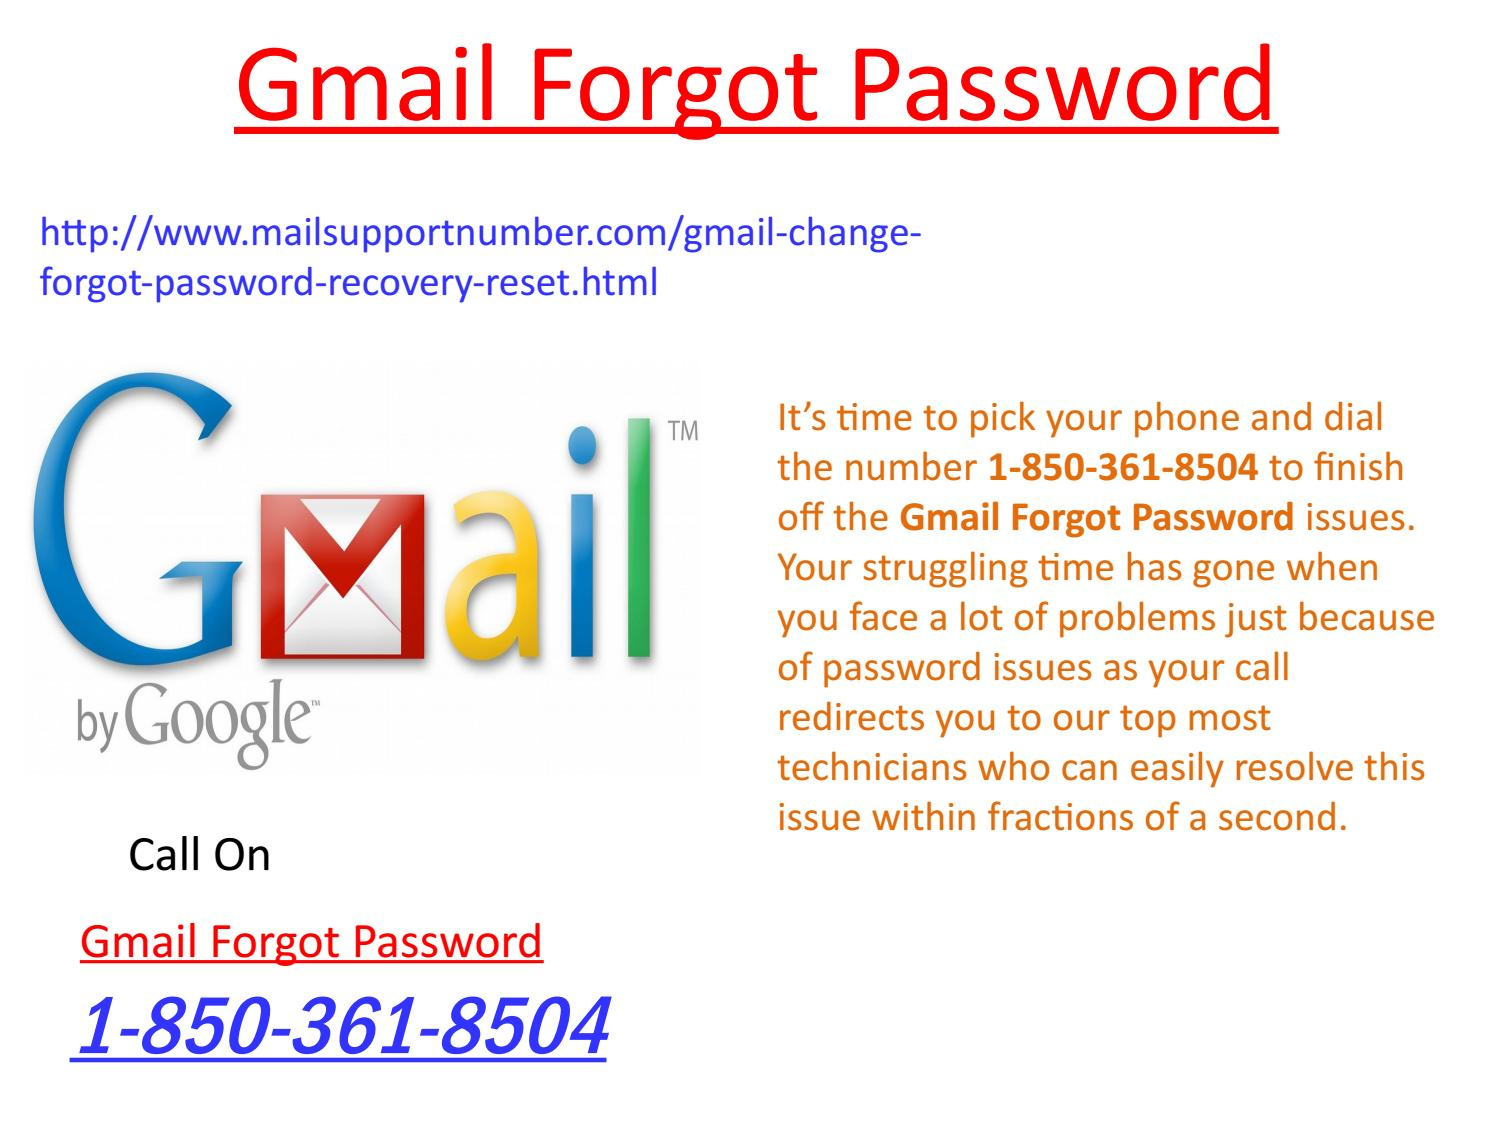 Does Gmail Forgot Password 1-850-361-8504 team fix all